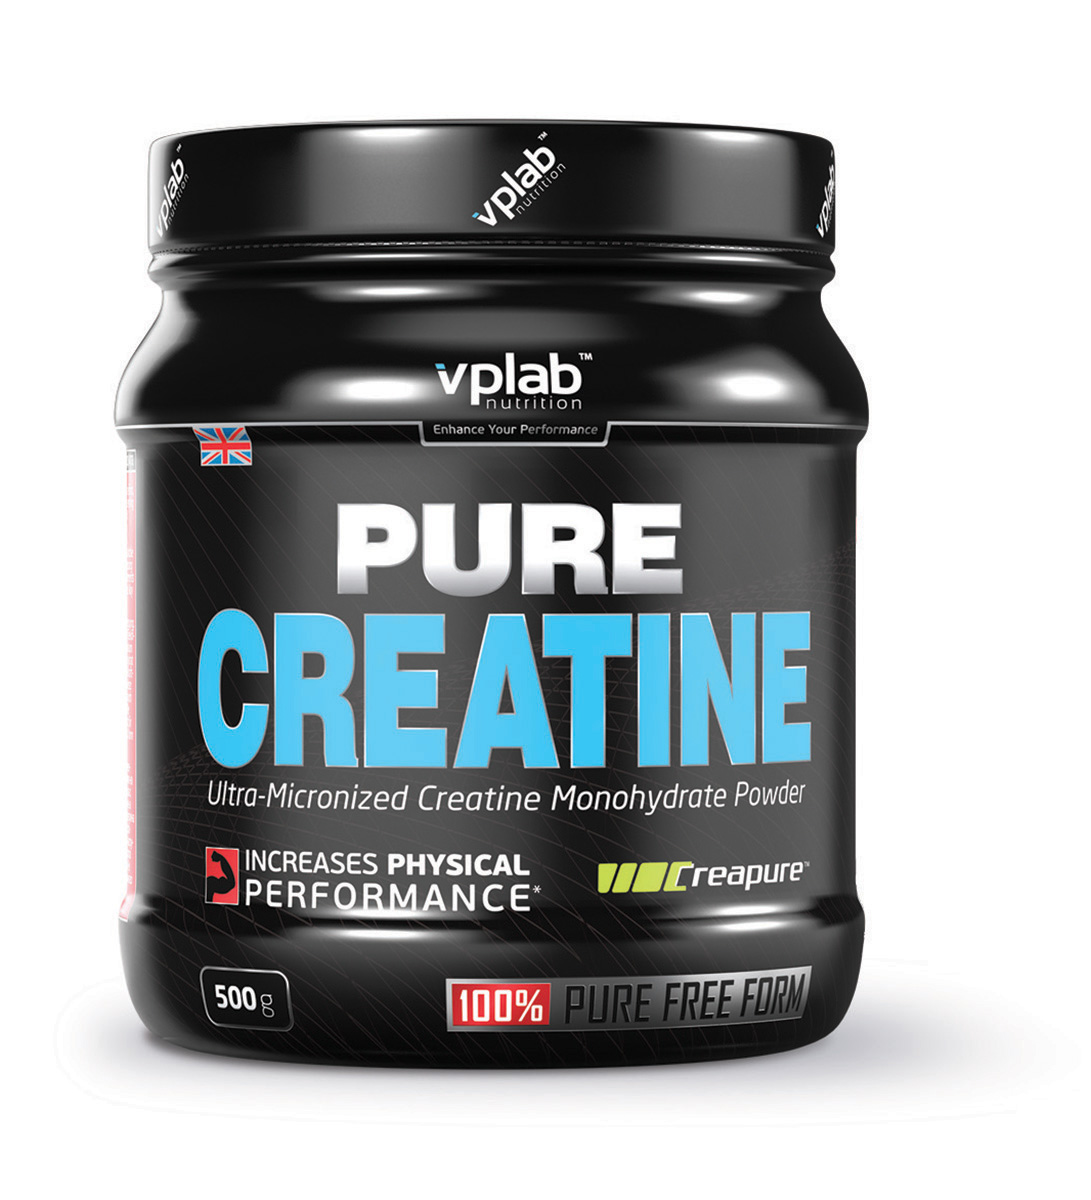 Креатин моногидрат Vplab Pure Creatine, 500 г dymatize nutrition моногидрат креатина dymatize creatine micronized 500гр